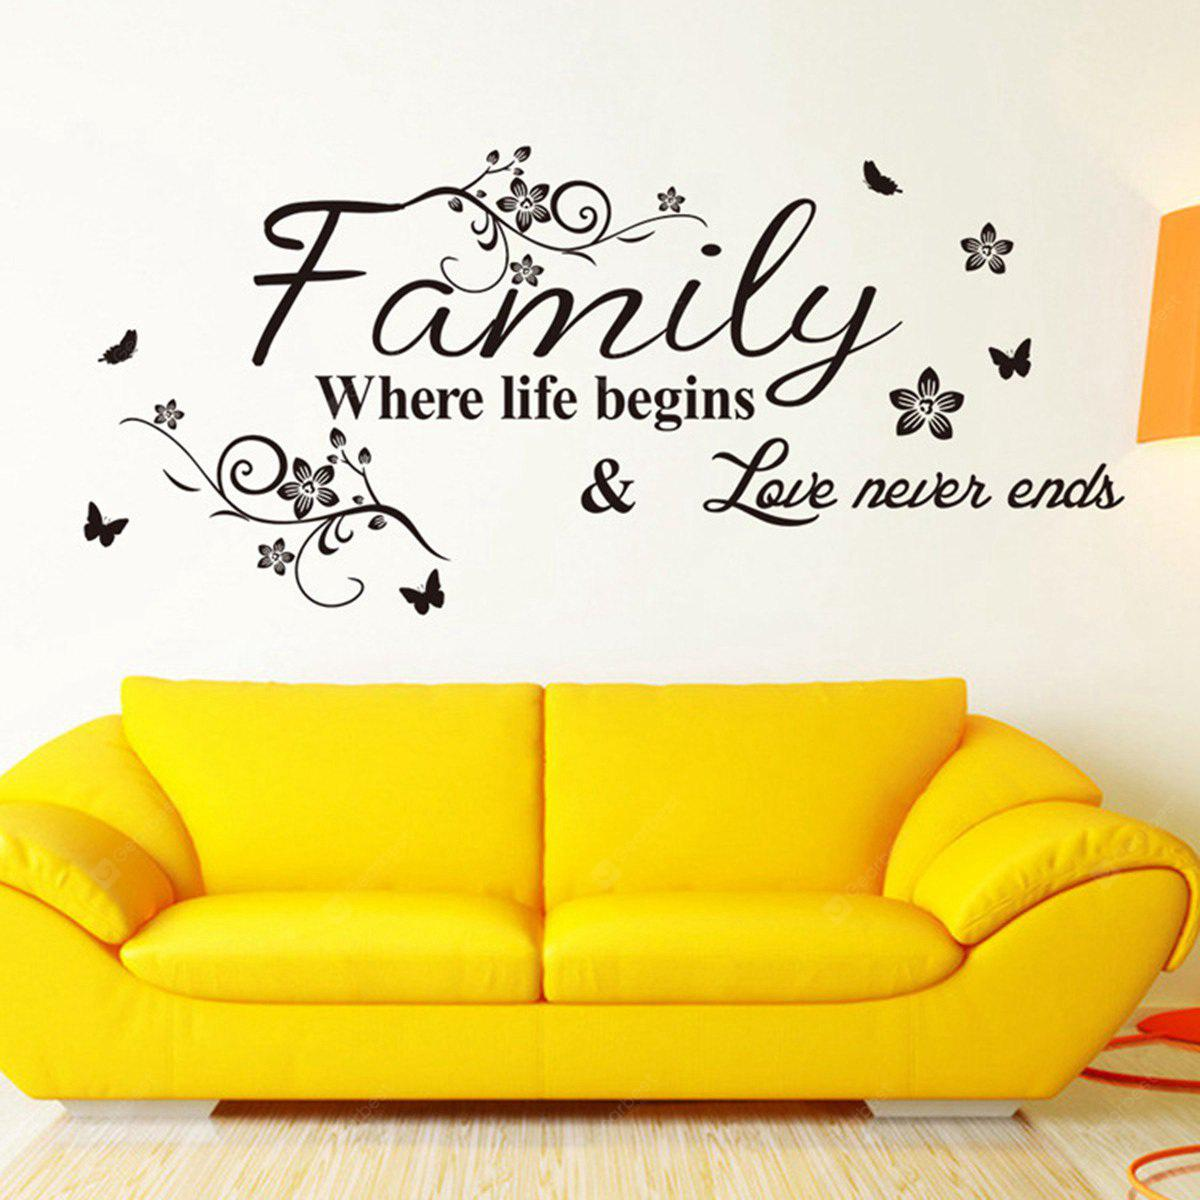 Family Palabra en Ingles Estilo Sticker Calcomania para Paredes y Decoración para el Hogar